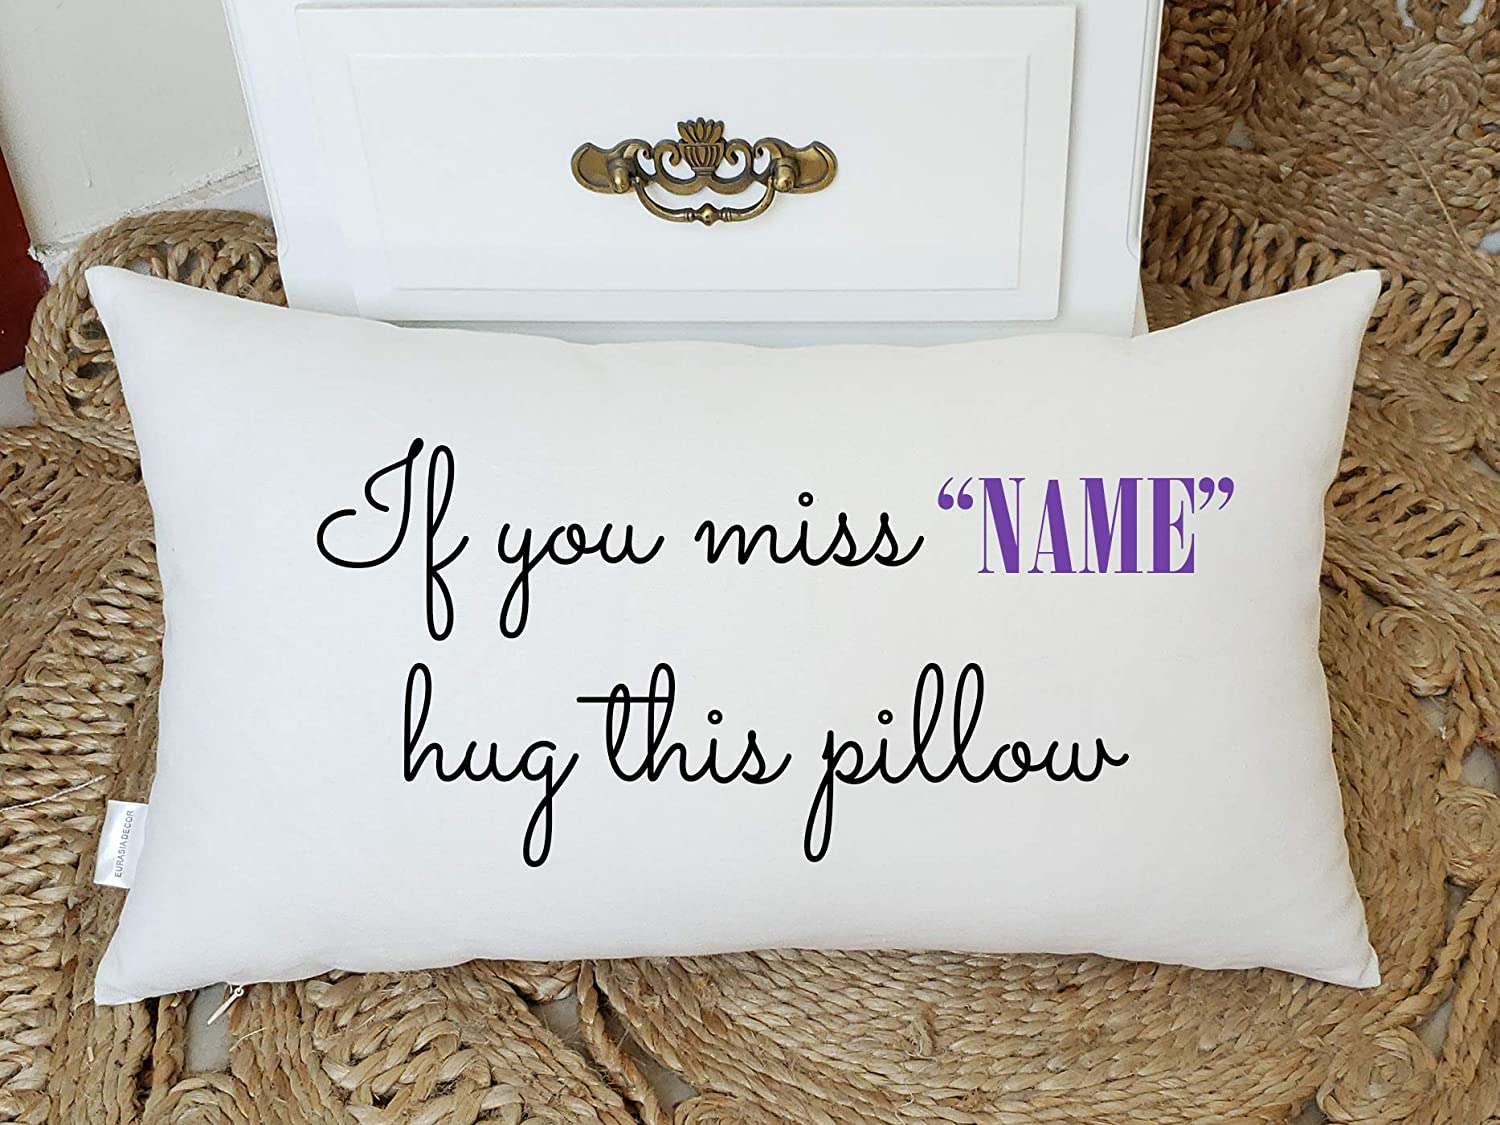 Yugtex Cushion Cover Personalized Name Pillow, Long distance relationship Gift Pillow case Personalized Boyfriend Love Friendship Friend I miss you If you miss me hug this pillow